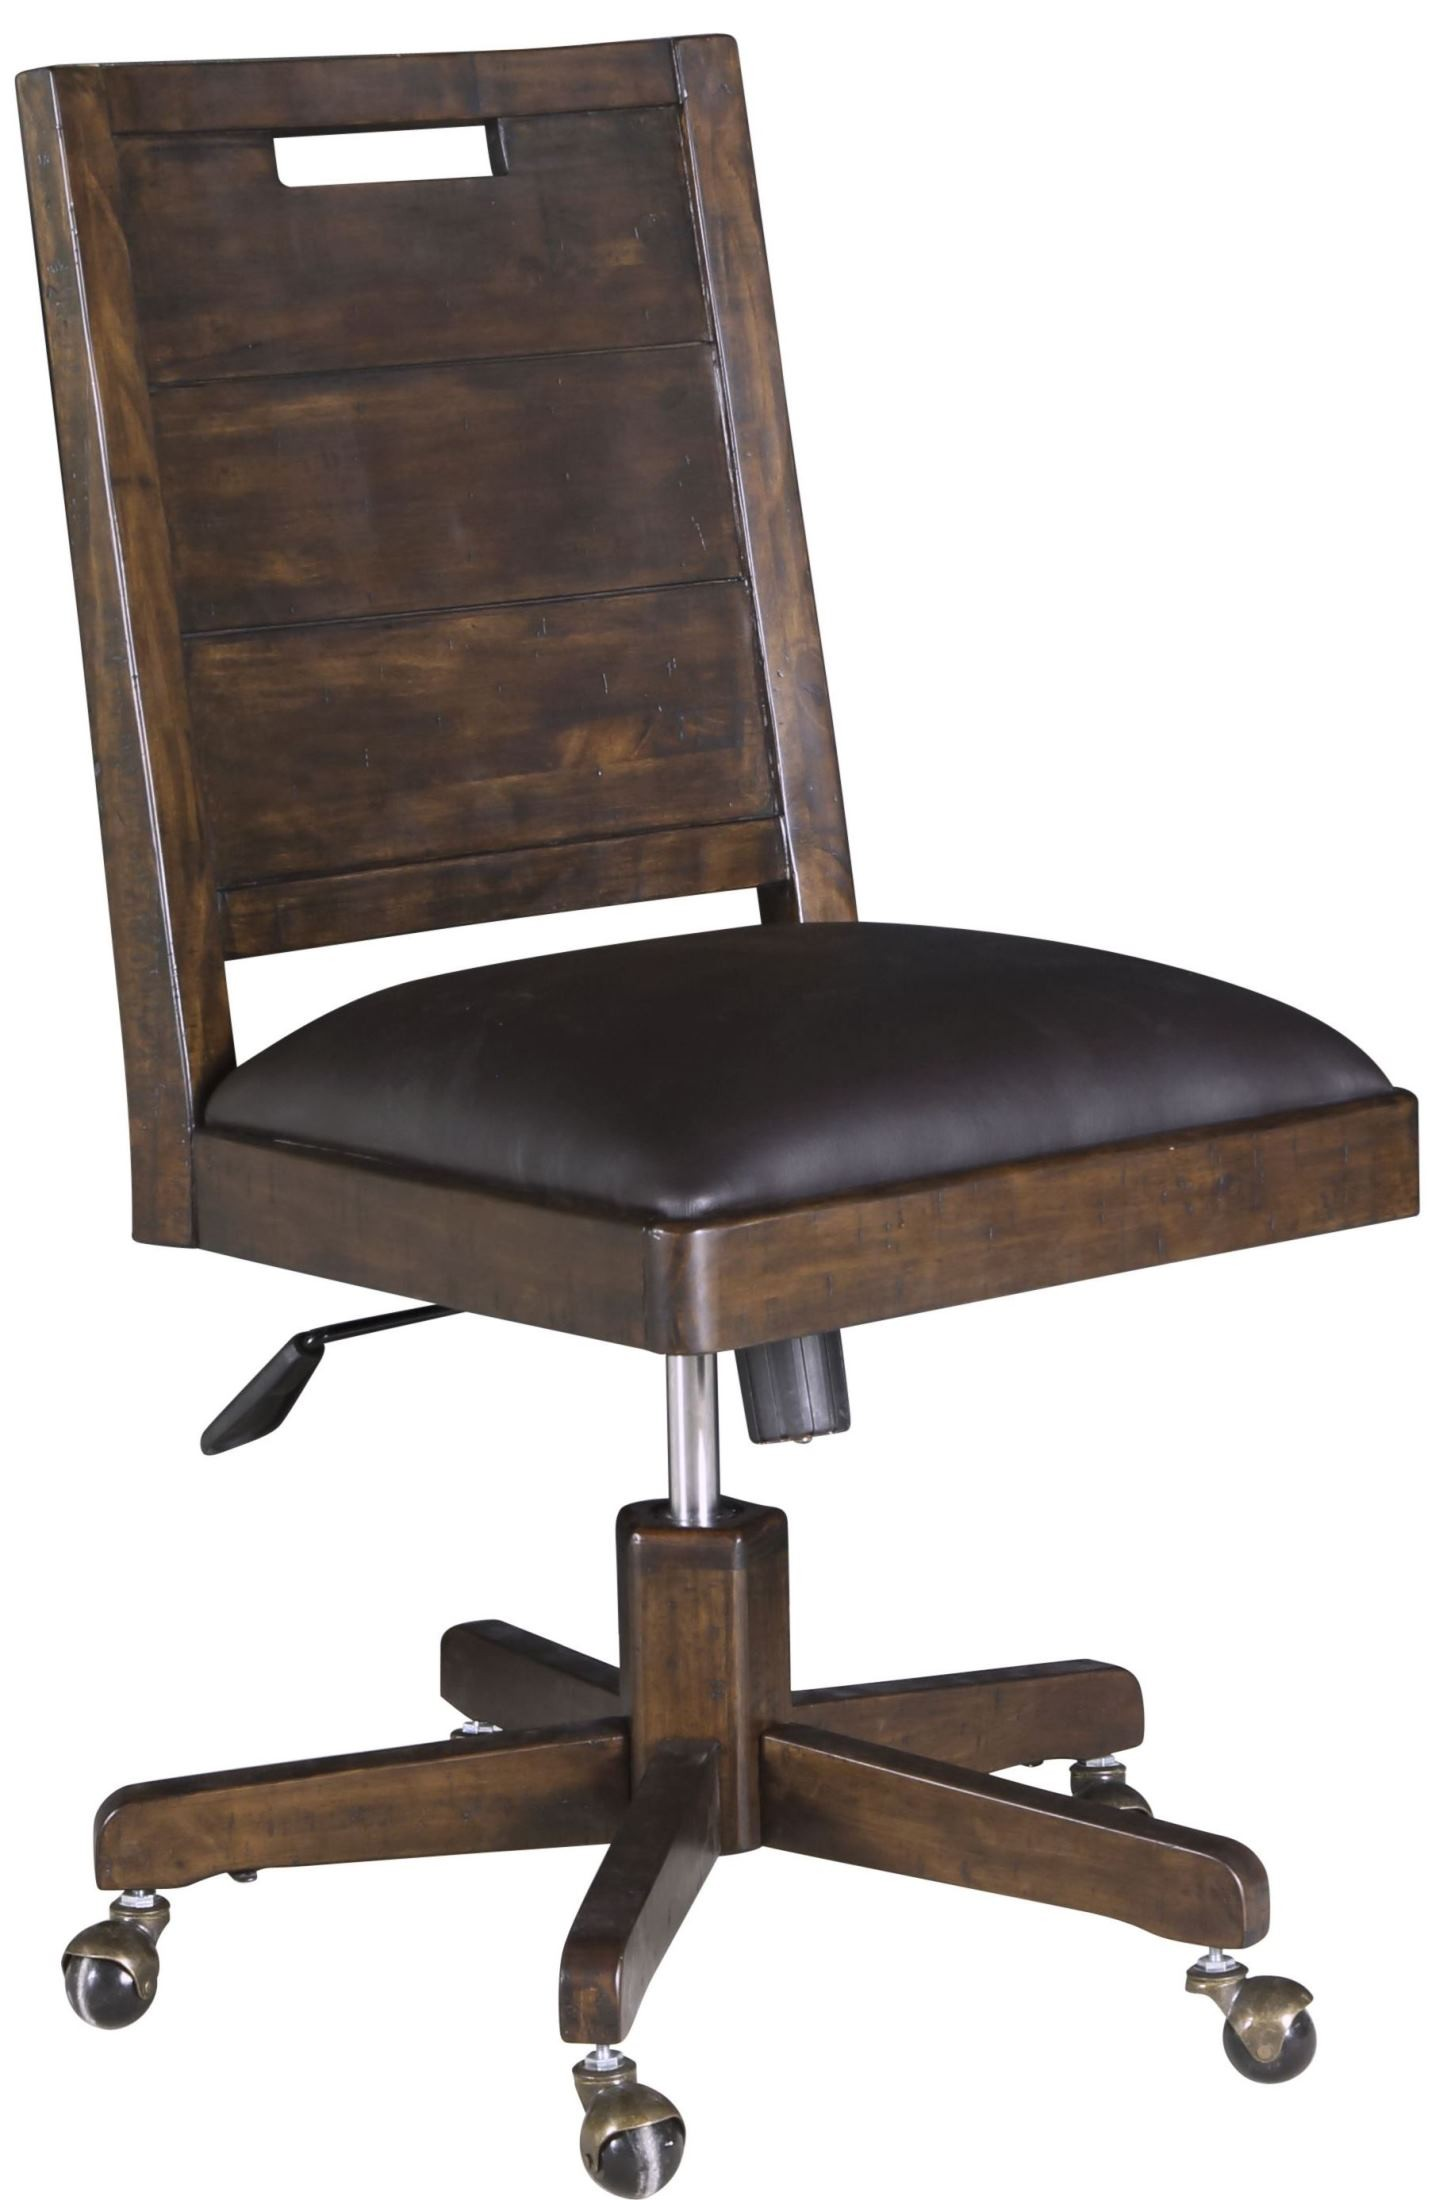 Pine Hill Rustic Pine Upholstered Swivel Chair from